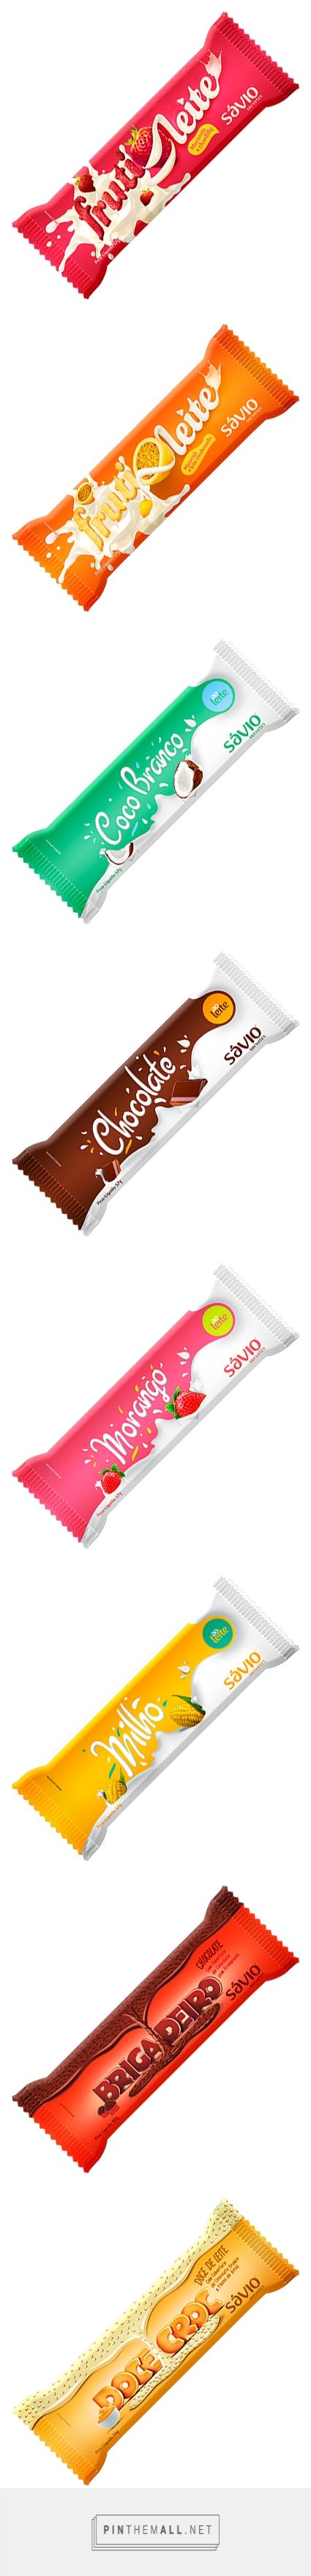 Sávio Sorvetes. Pin curated by #SFields99 #packaging #design